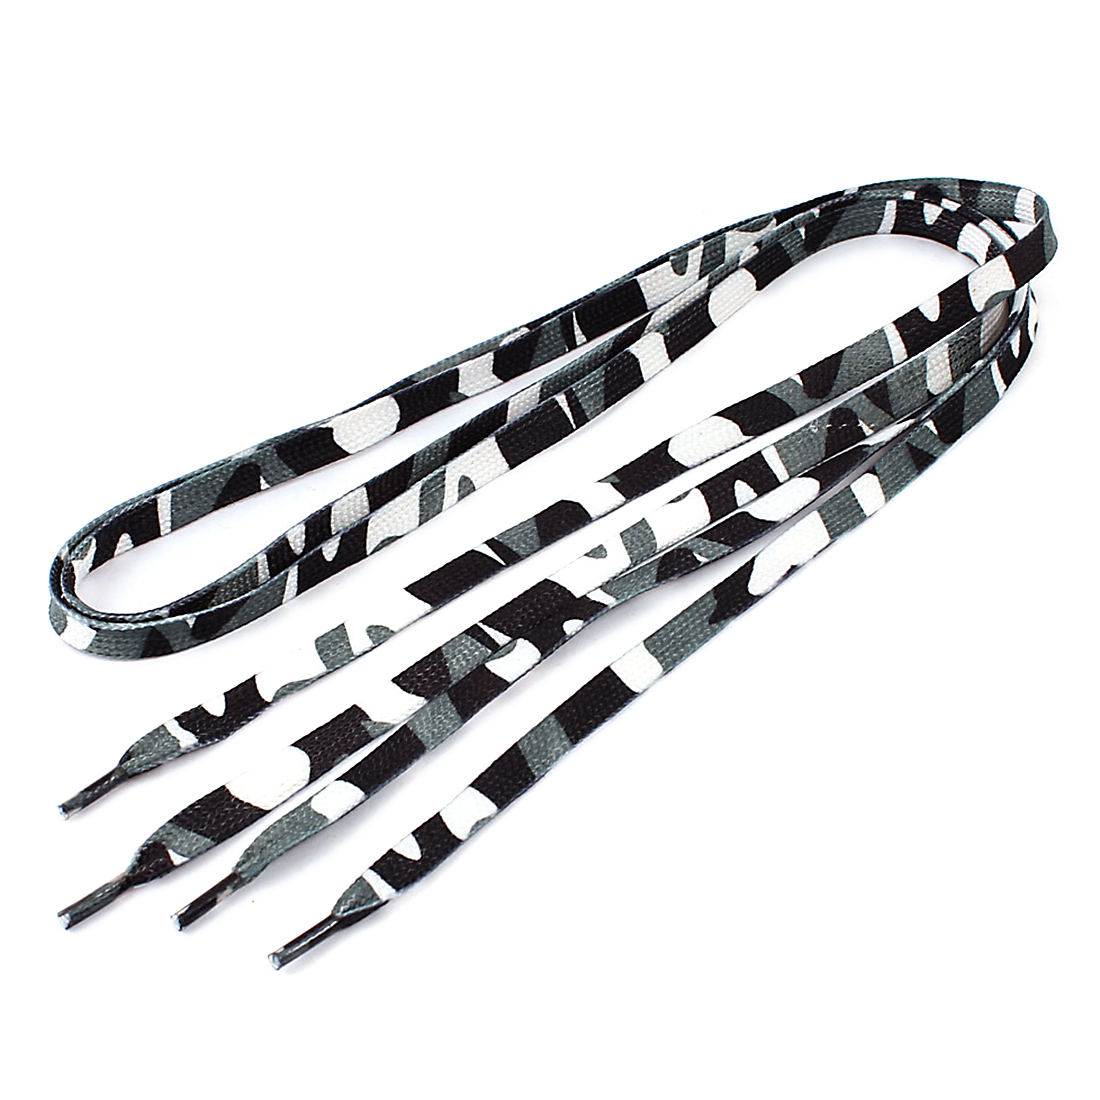 Pair White Green Plastic Tip Camouflage Pattern Flat Shoelaces 114cm Long